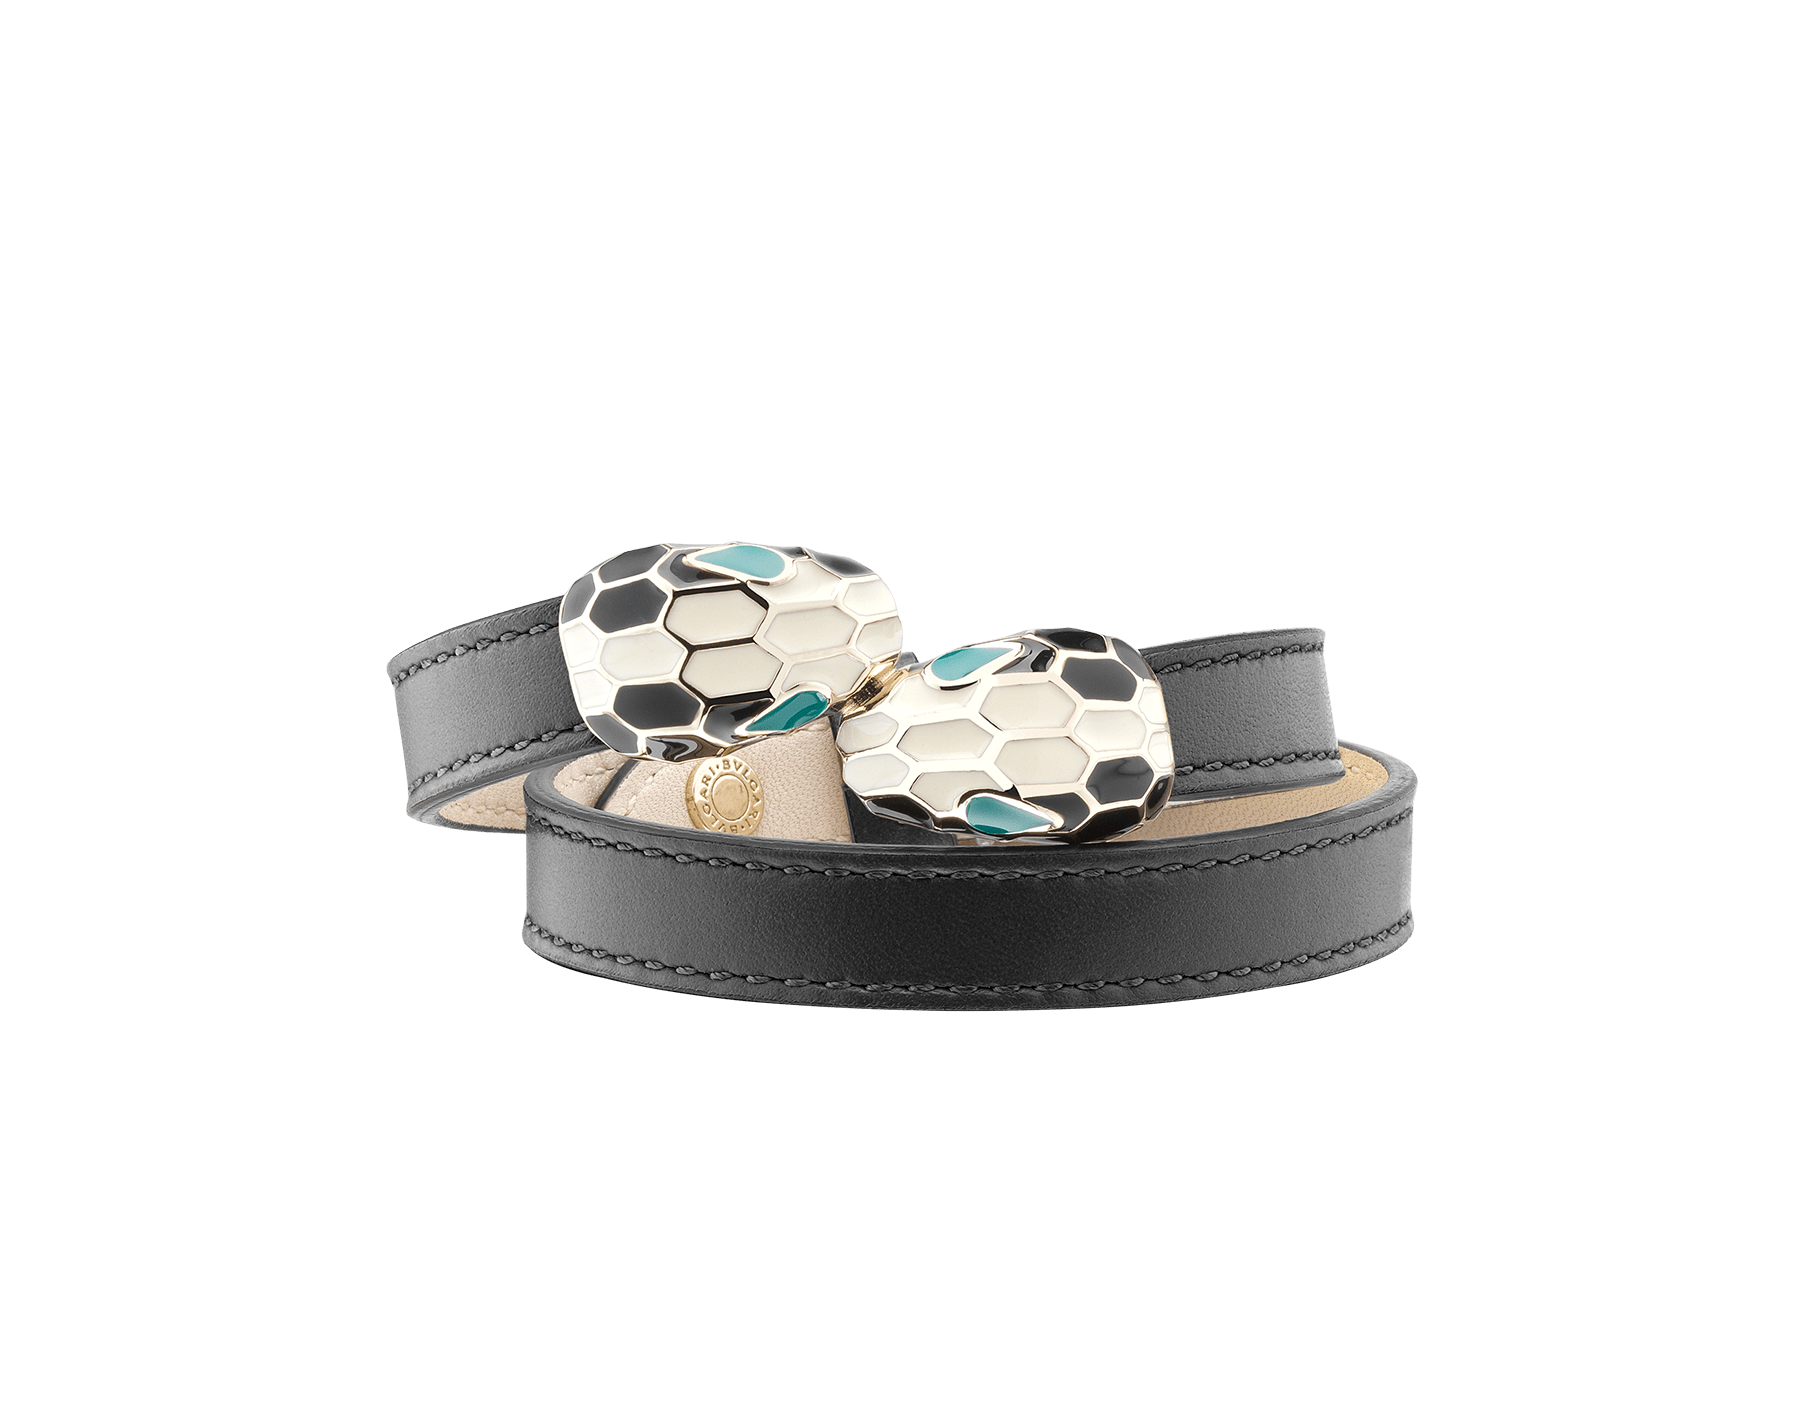 Multi-coiled bracelet in black calf leather. Brass light gold plated iconic contraire Serpenti head closure in black and white enamel with malachite enamel eyes. 280738 image 1